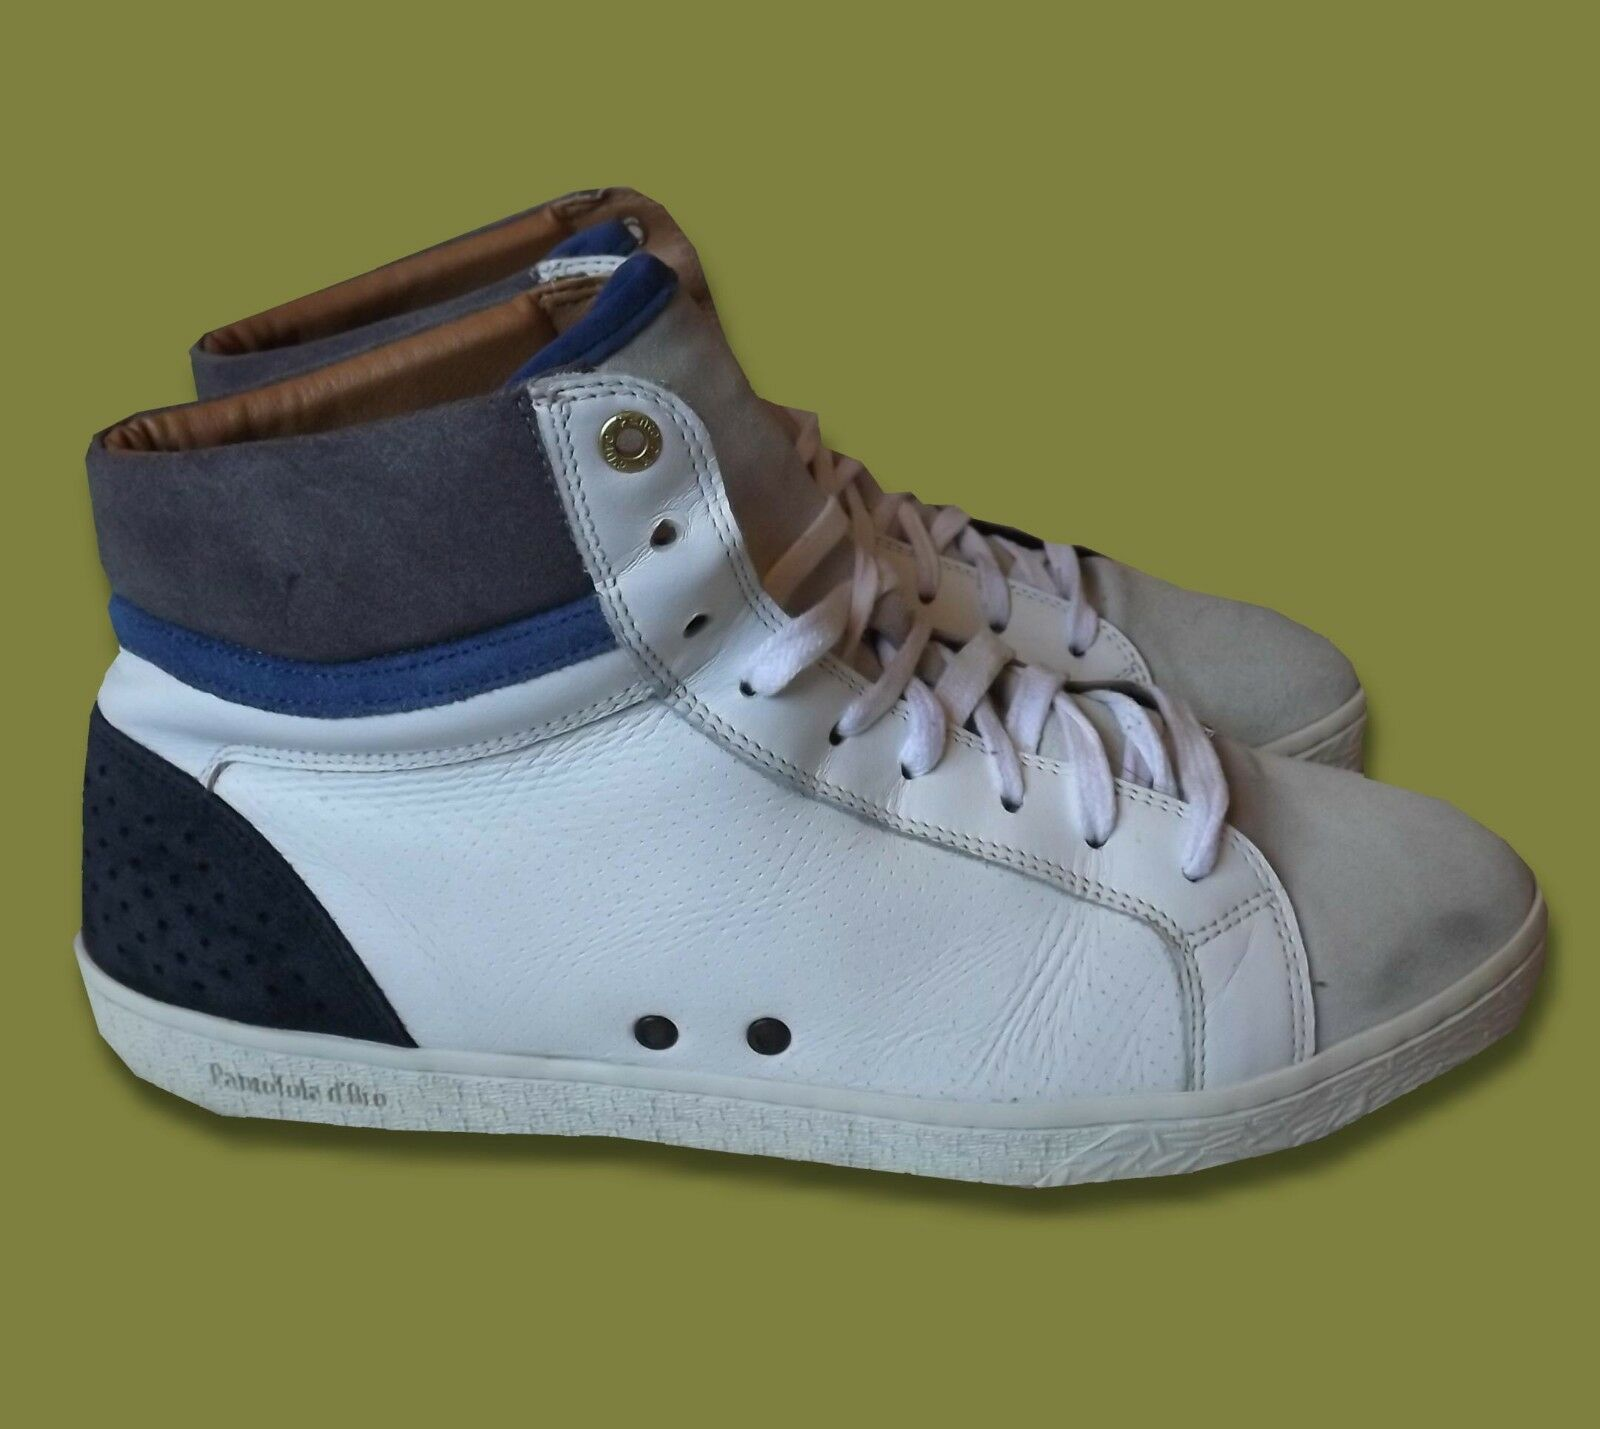 PANTOFOLO D'gold.  MEN'S SHOES HI TOPS CASUAL BOOTS TRAINERS LEATHER